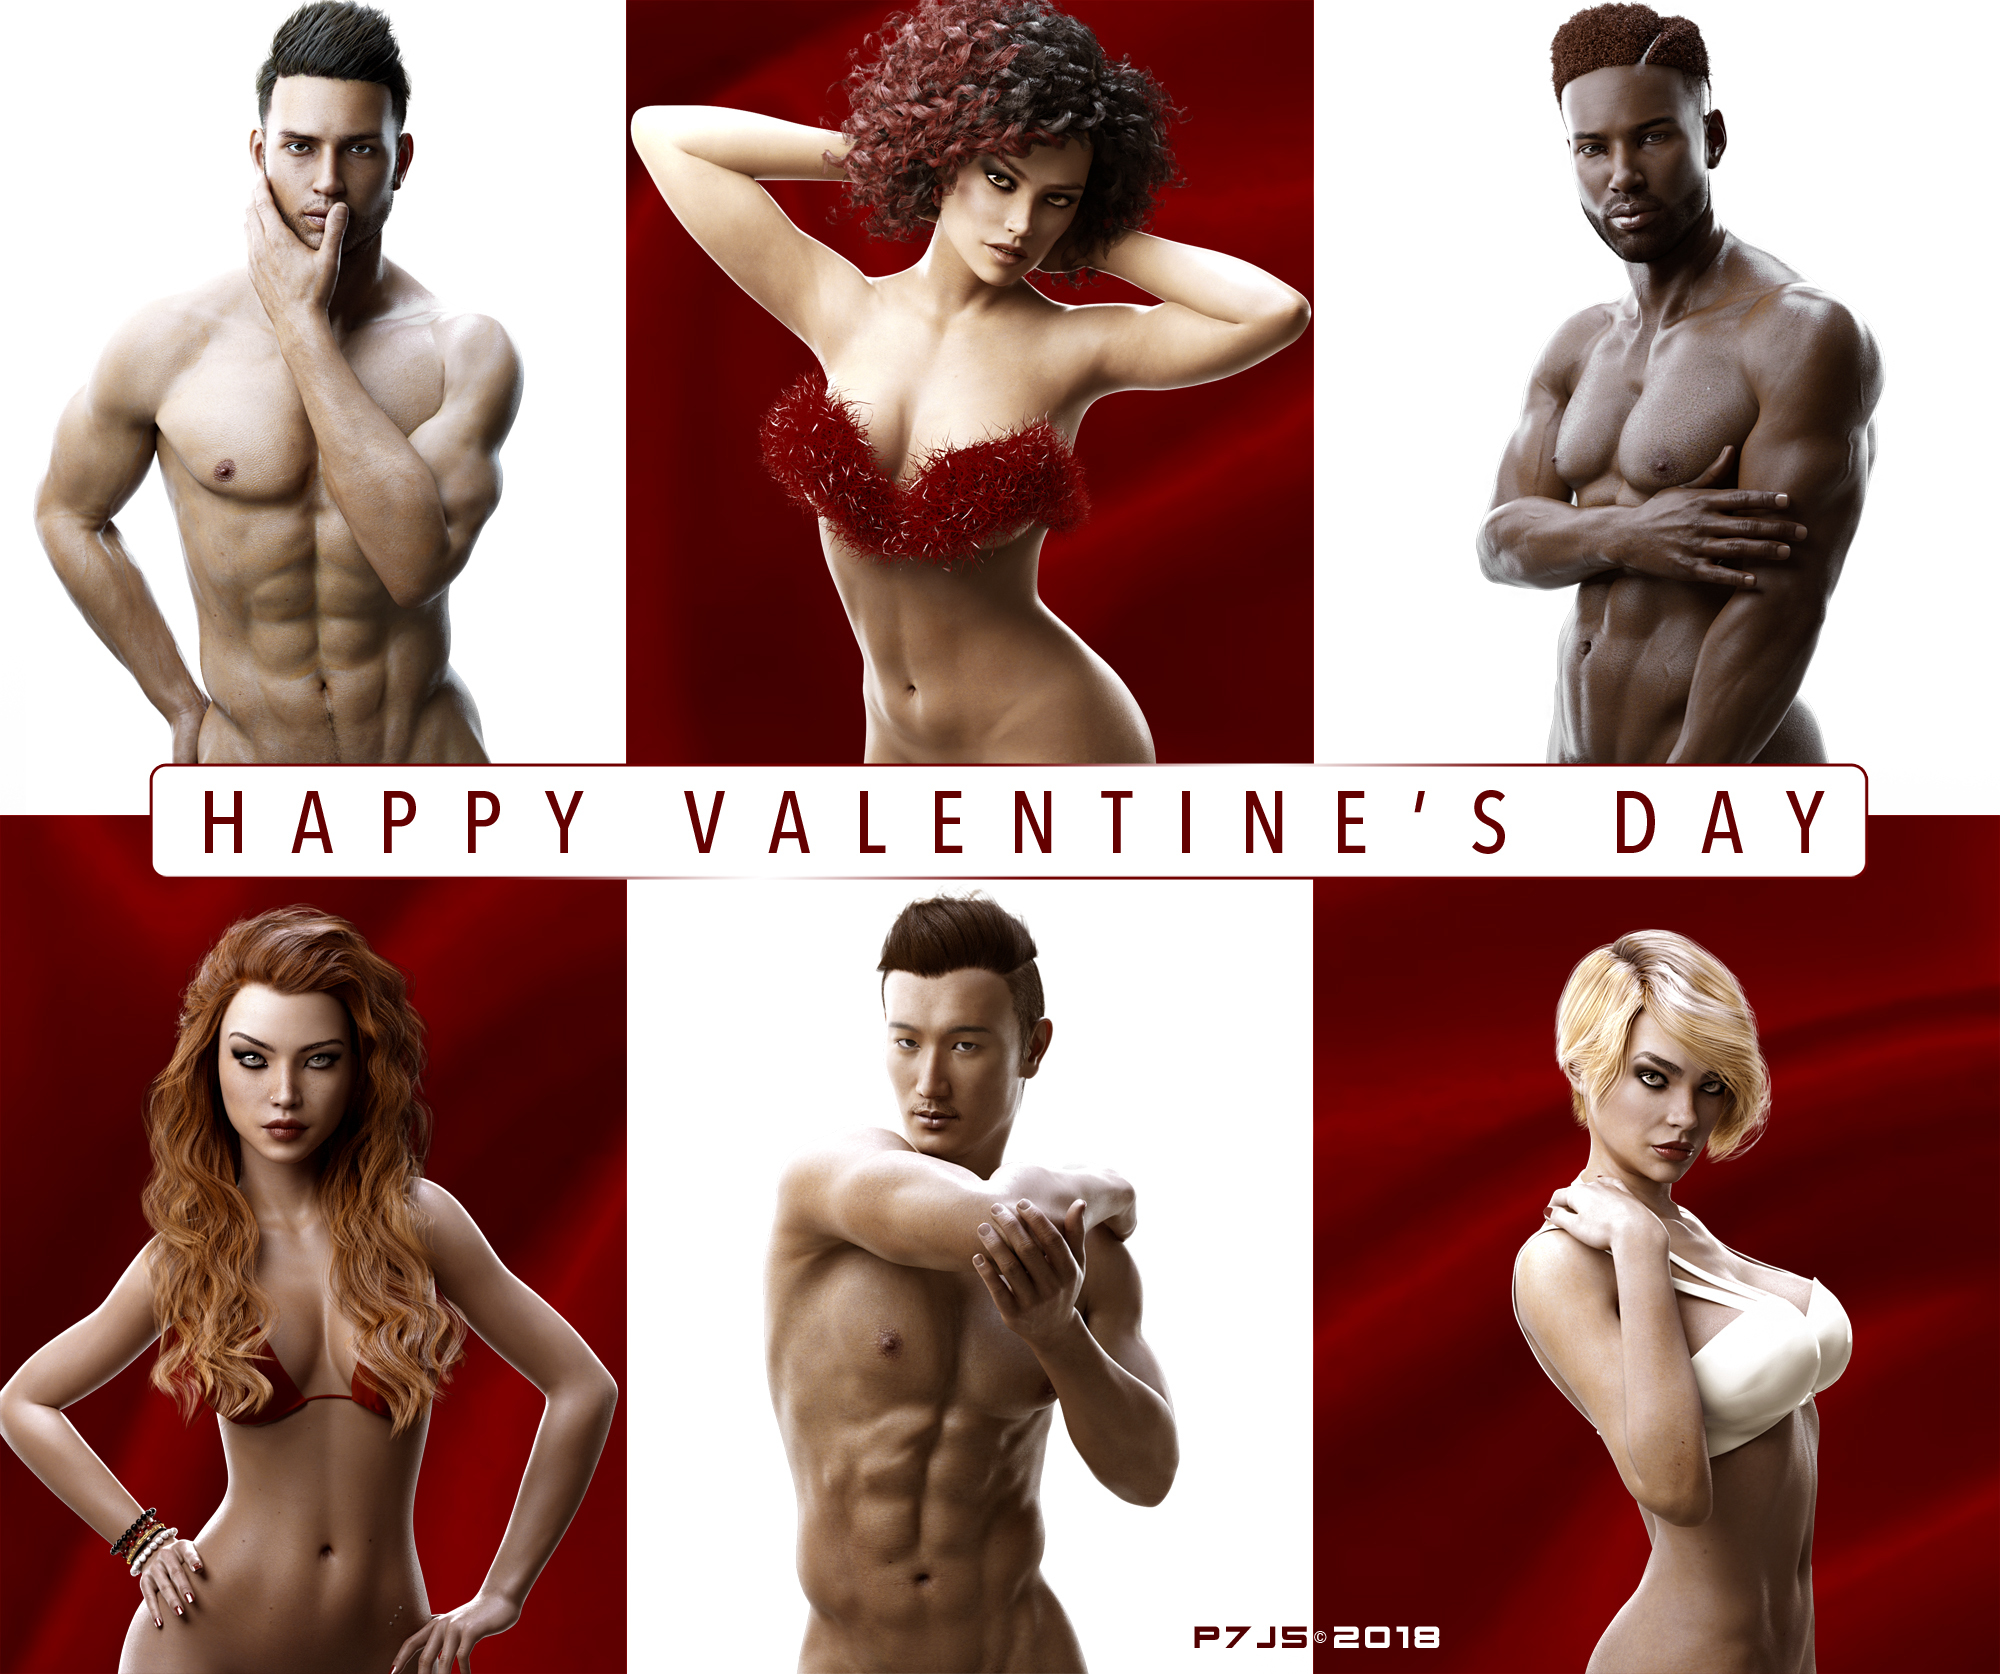 The Valentine Models